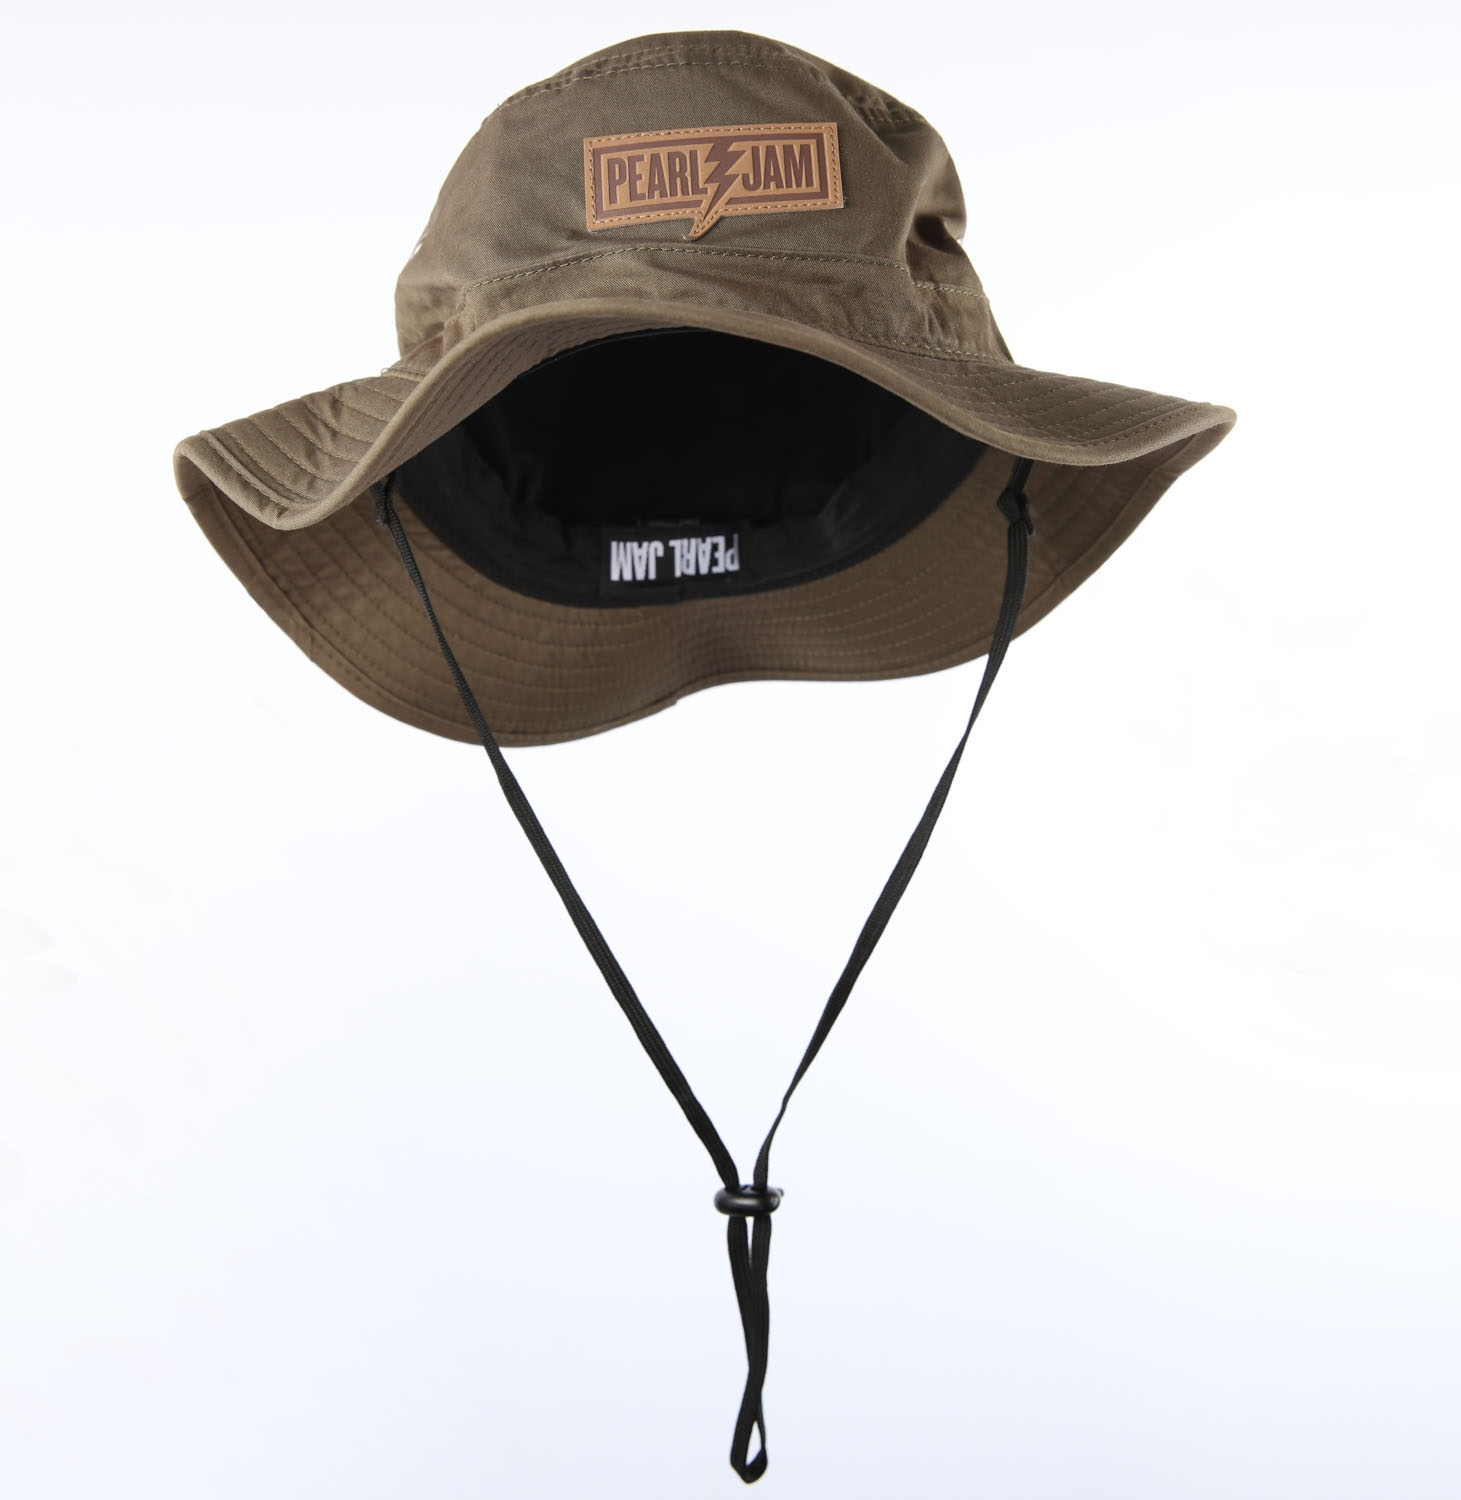 2015 PEARL JAM CRASH BOONIE HAT also known as a